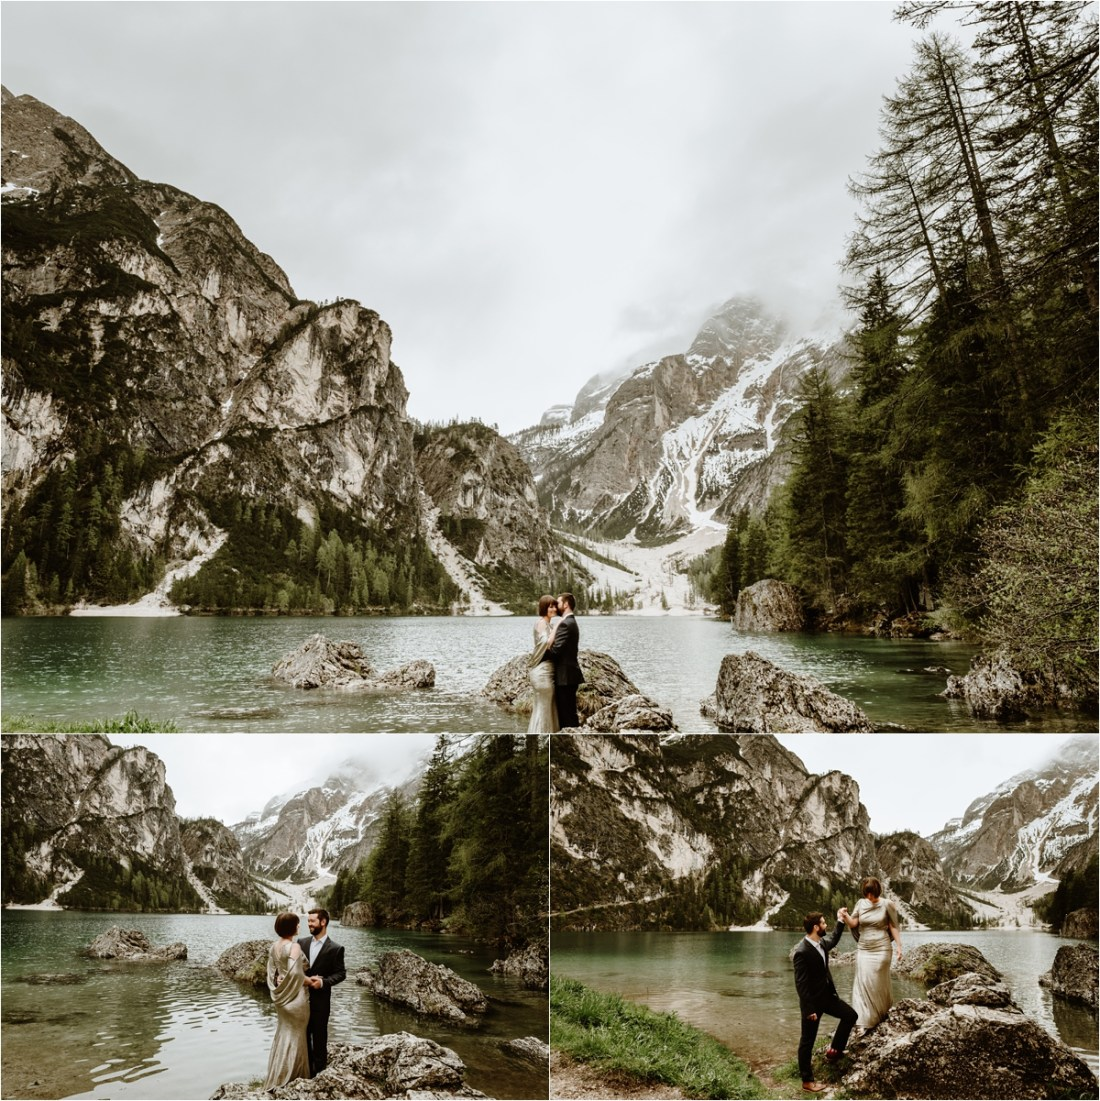 Bride & groom stand on the rocks around Lake Braies in the Italian Alps, wearing a gold wedding gown. Photo by Wild Connections Photography